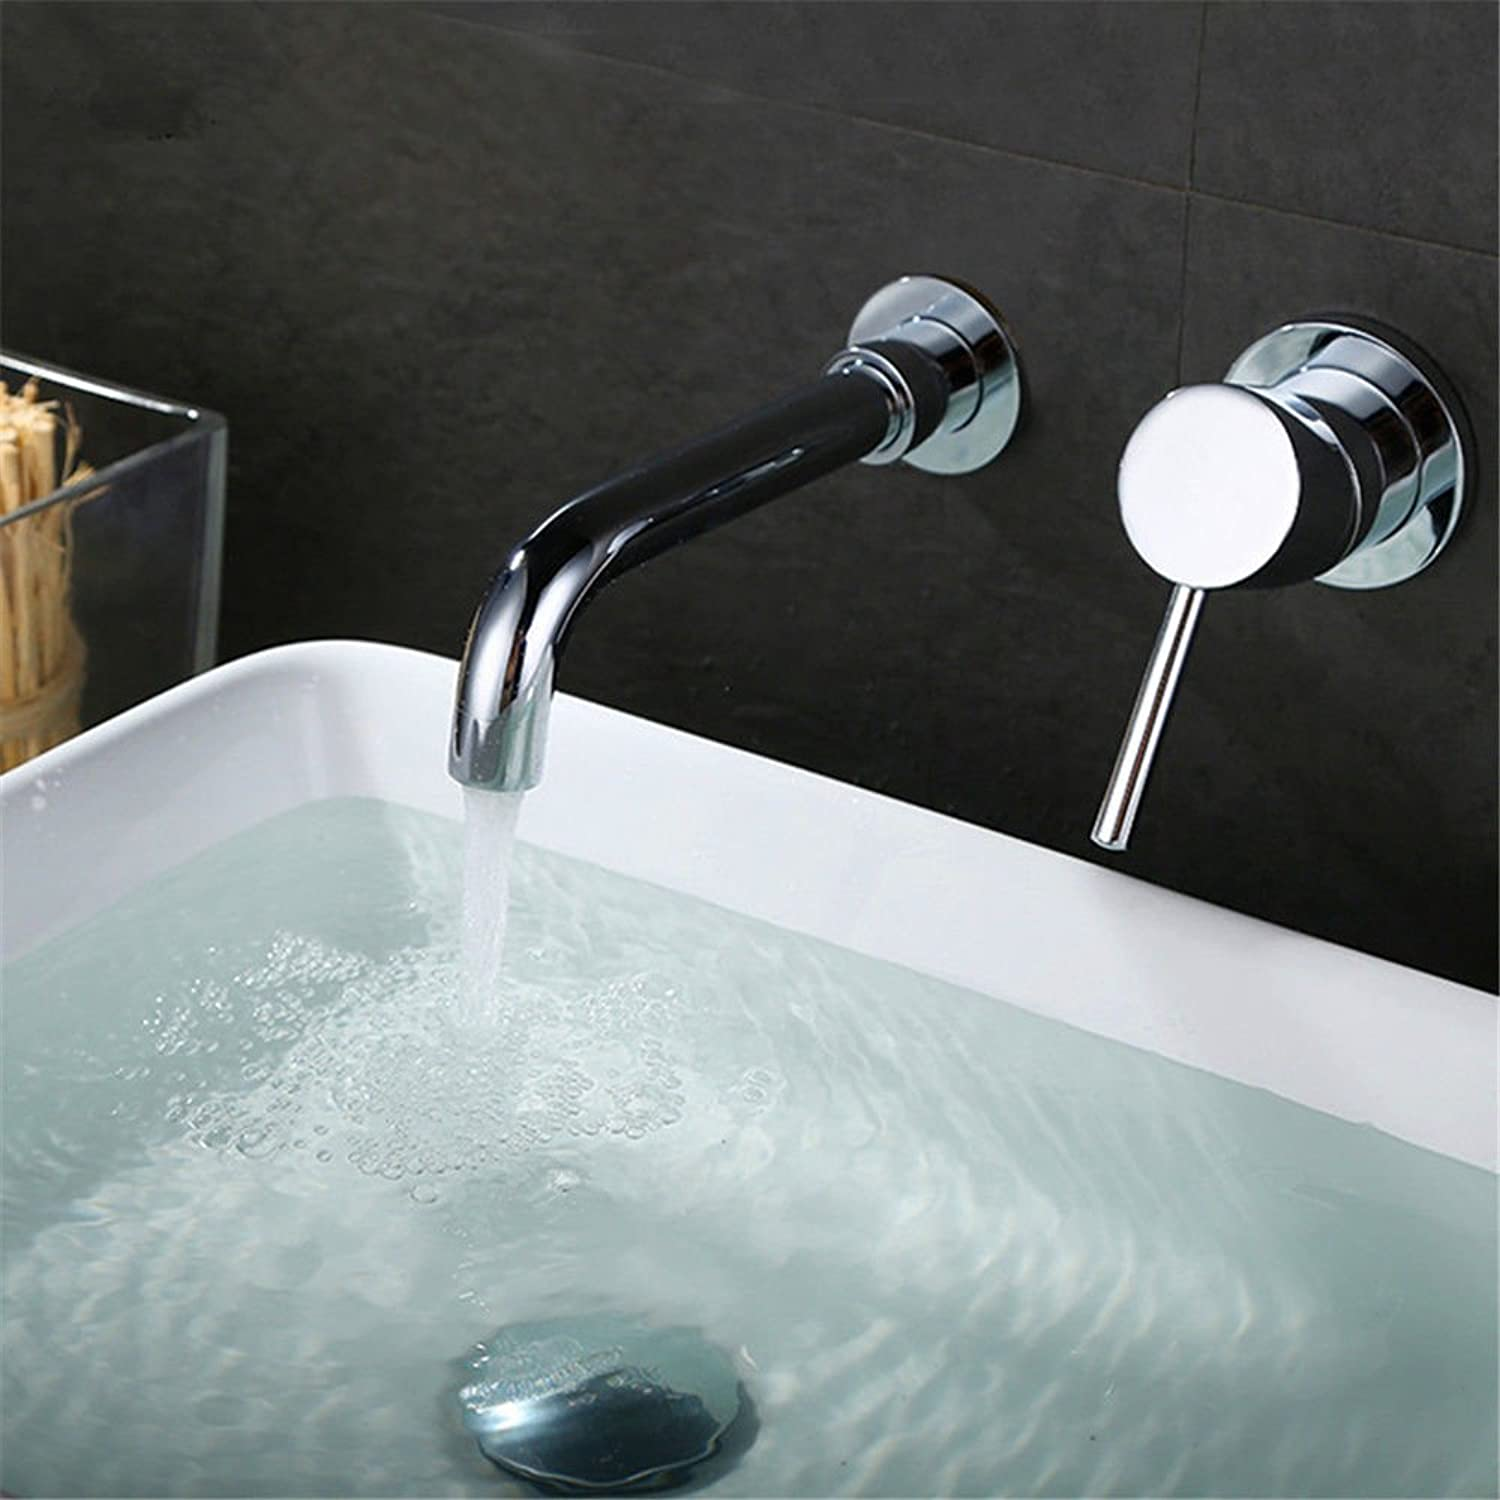 Lpophy Bathroom Sink Mixer Taps Faucet Bath Waterfall Cold and Hot Water Tap for Washroom Bathroom and Kitchen Modern Copper Chrome Round Water Out of The Dark Wall Into A Single Hot and Cold